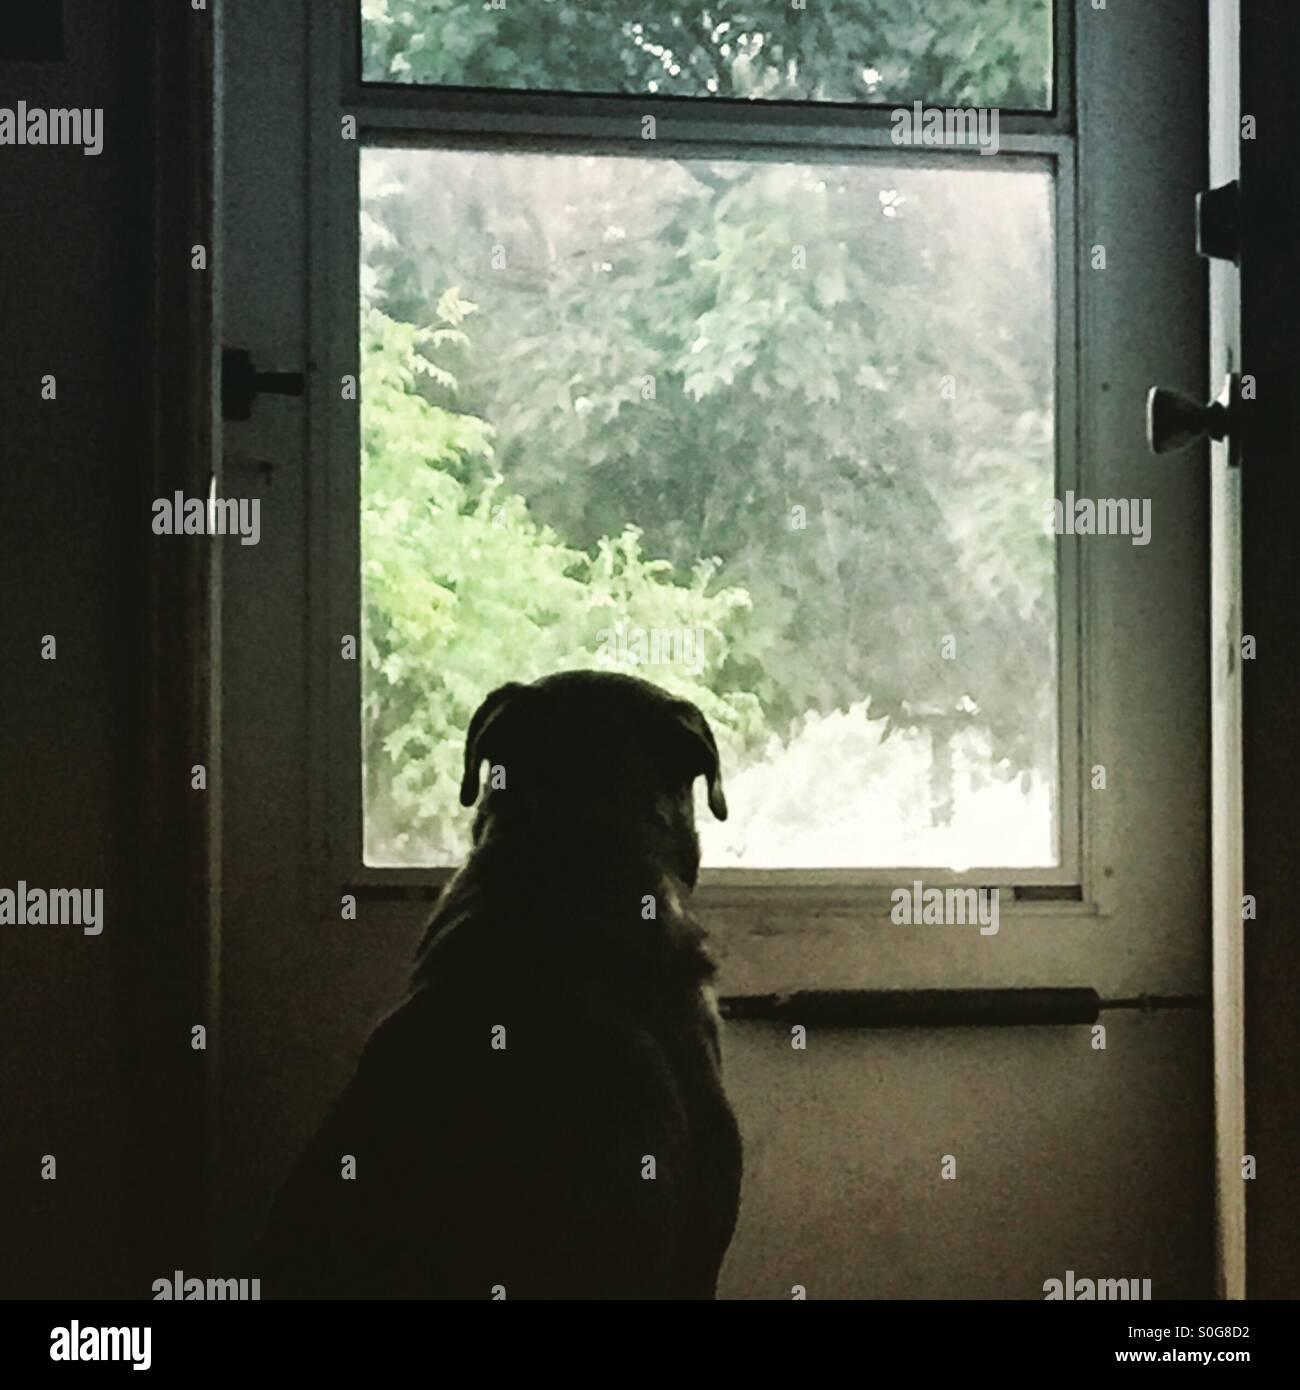 A dog waits patiently at the storm door for the rain to stop falling - Stock Image